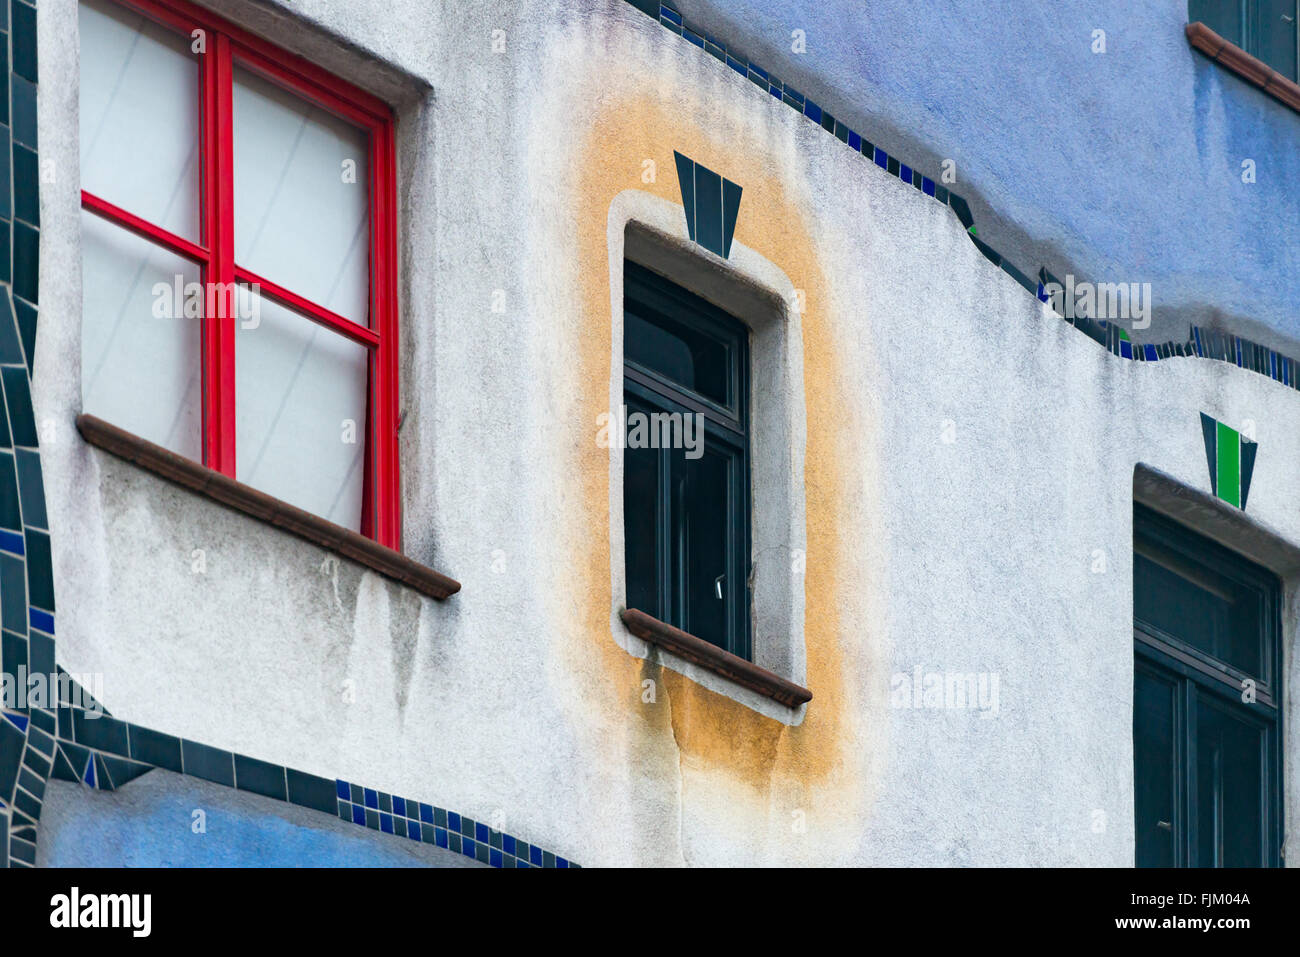 Details of Hundertwasser house in Vienna, Austria. Tourist attraction, unusual building. Europe travel. - Stock Image